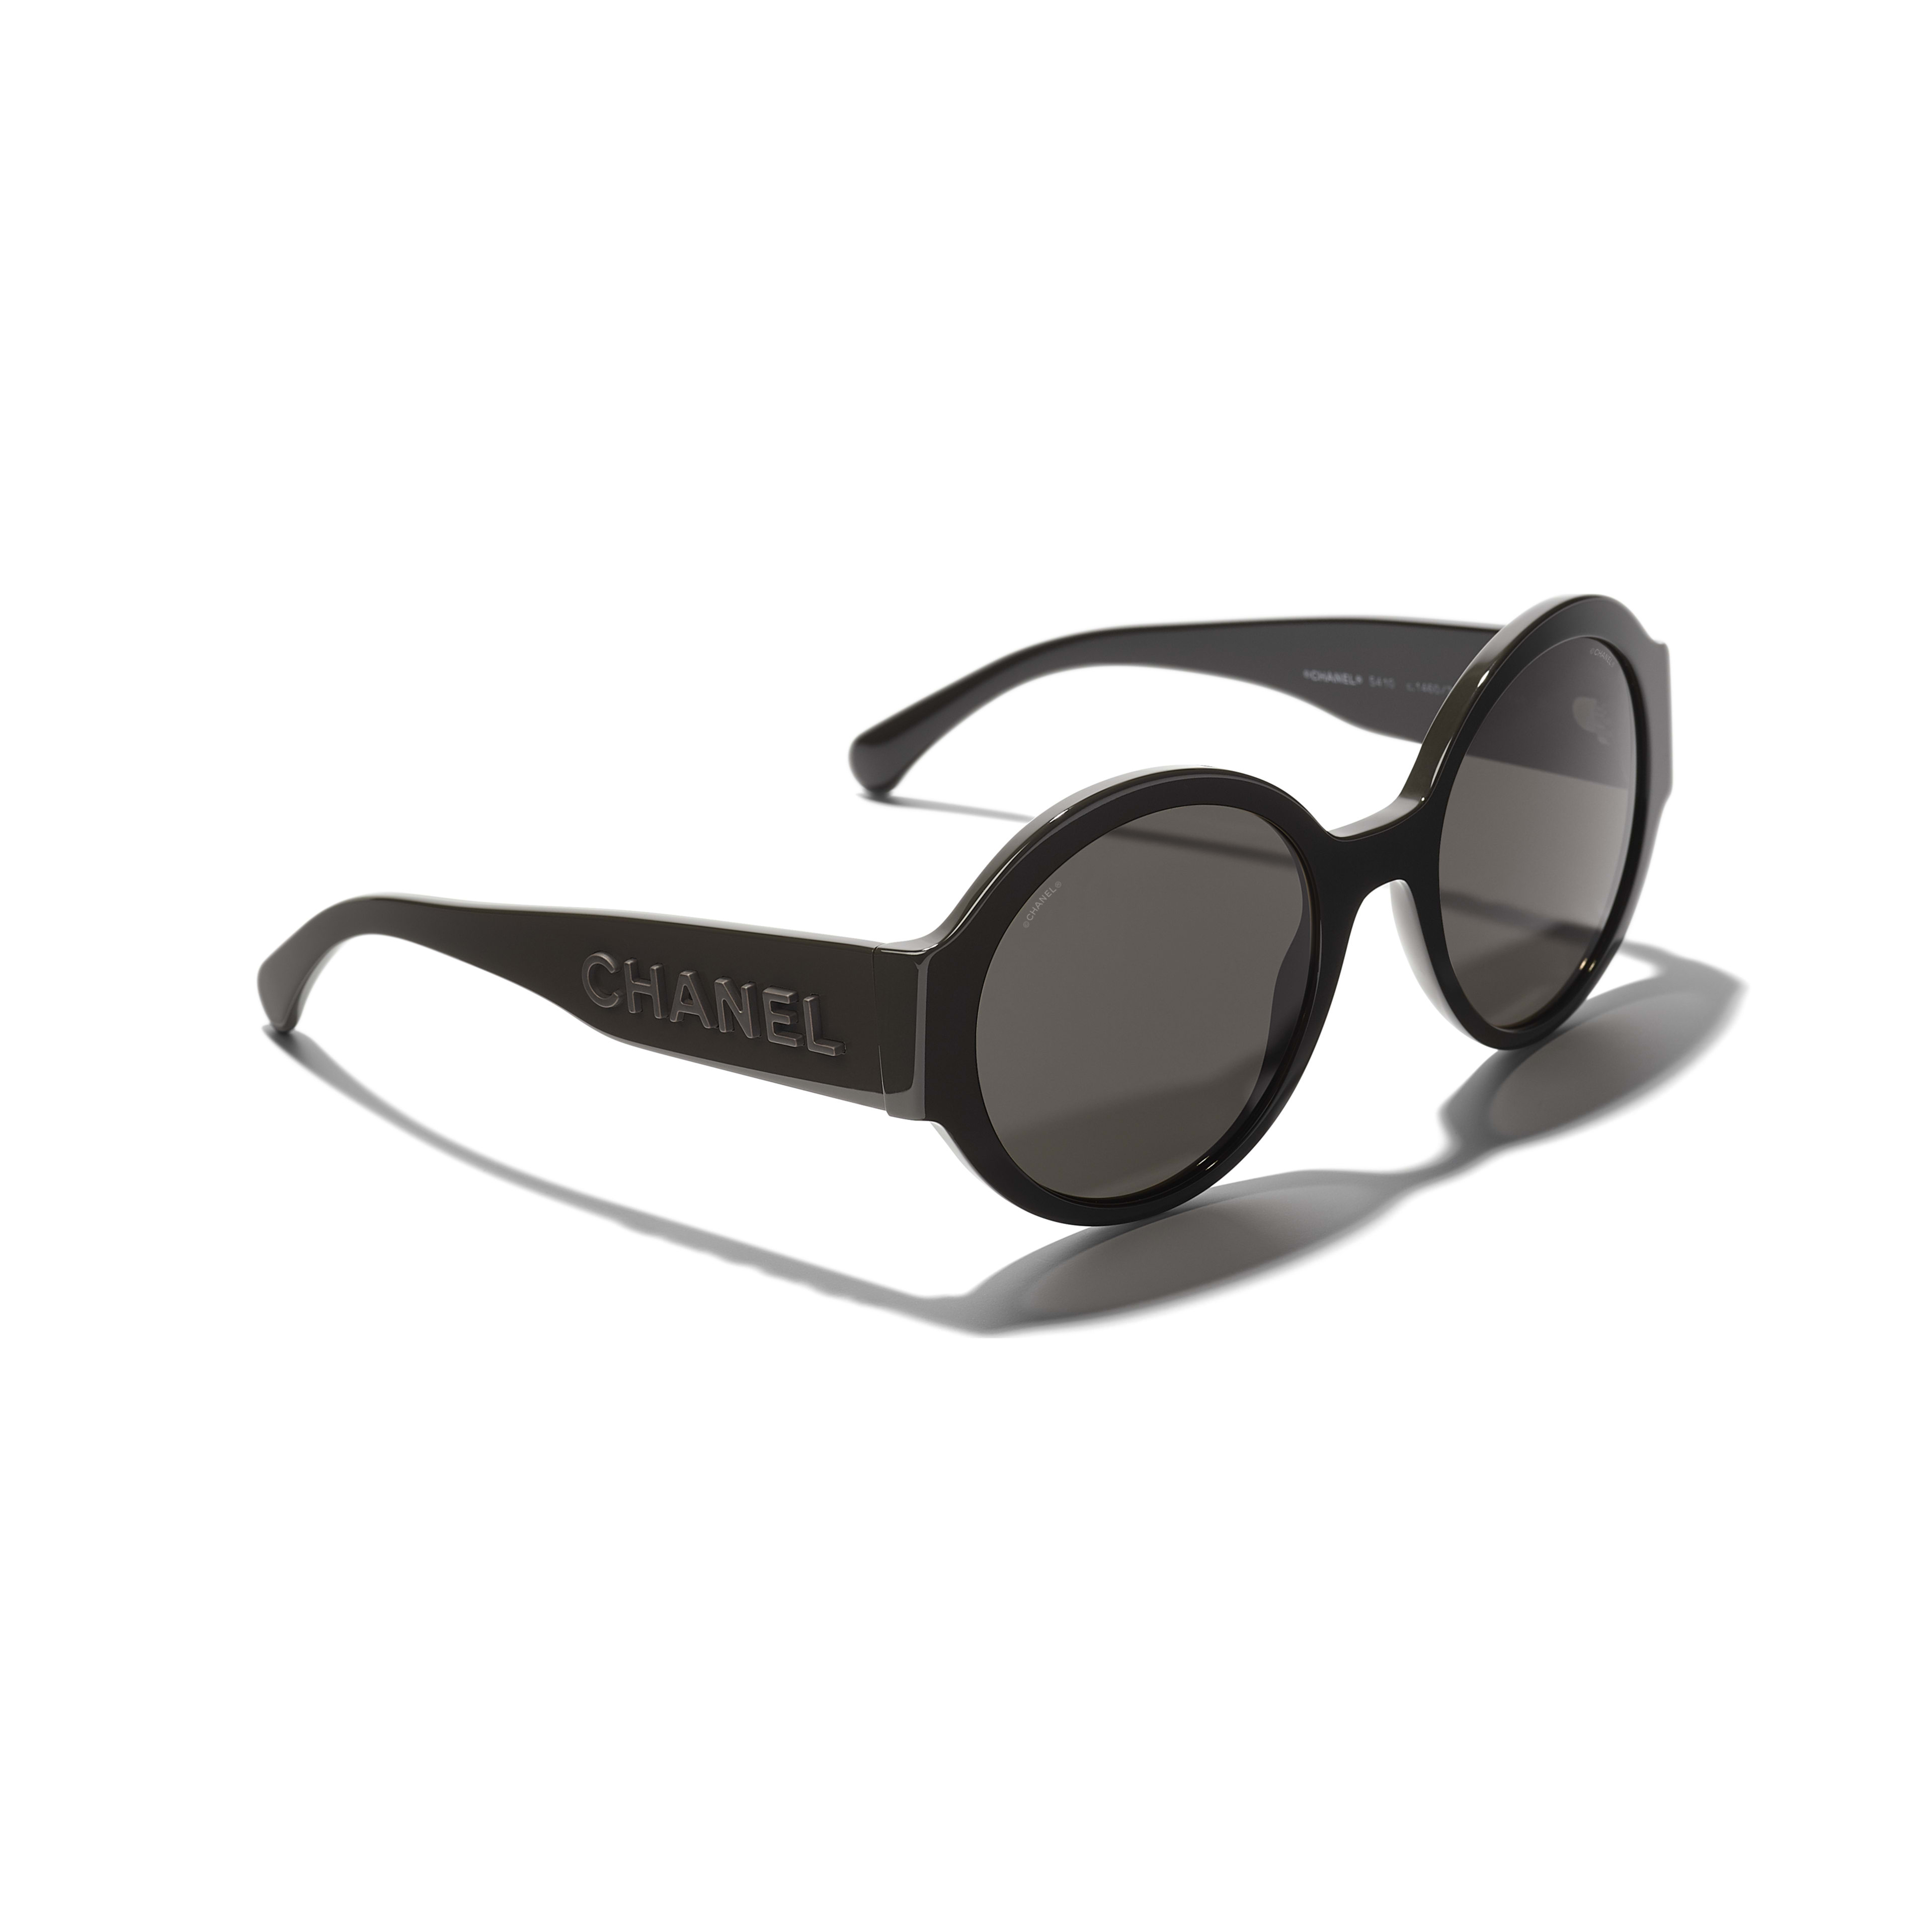 Round Sunglasses - Brown - Acetate - CHANEL - Extra view - see standard sized version